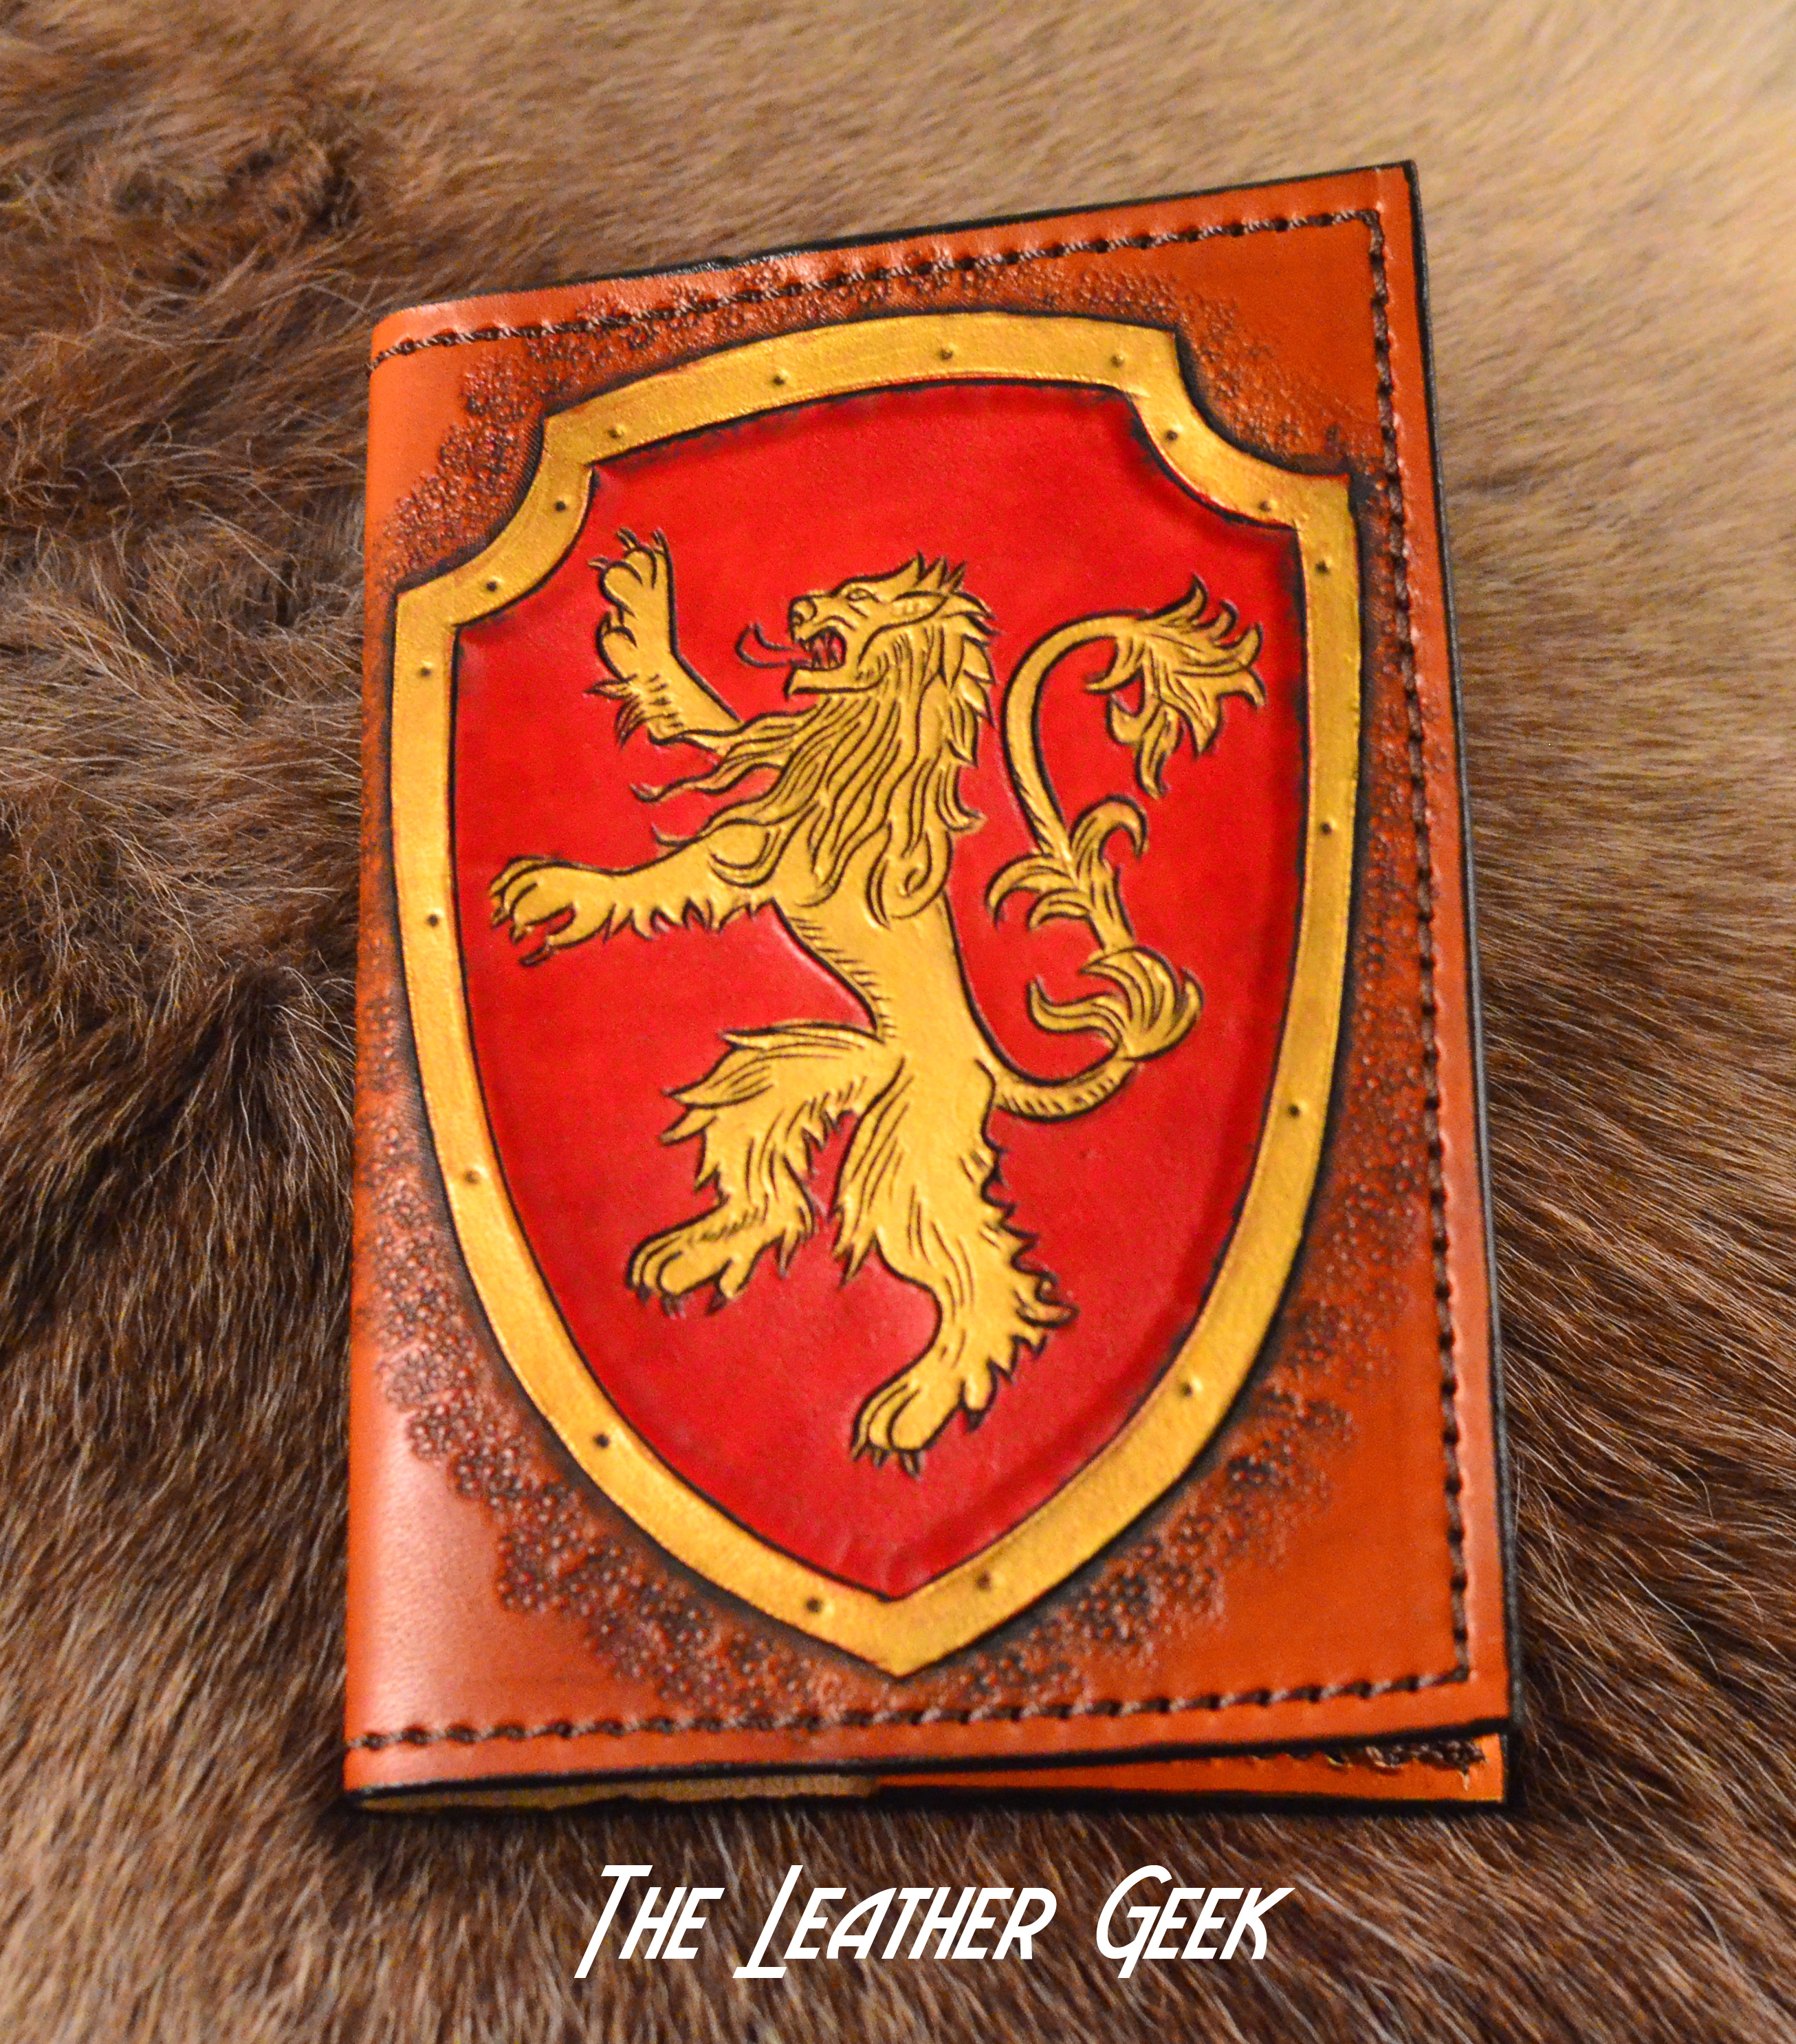 Lannister journal